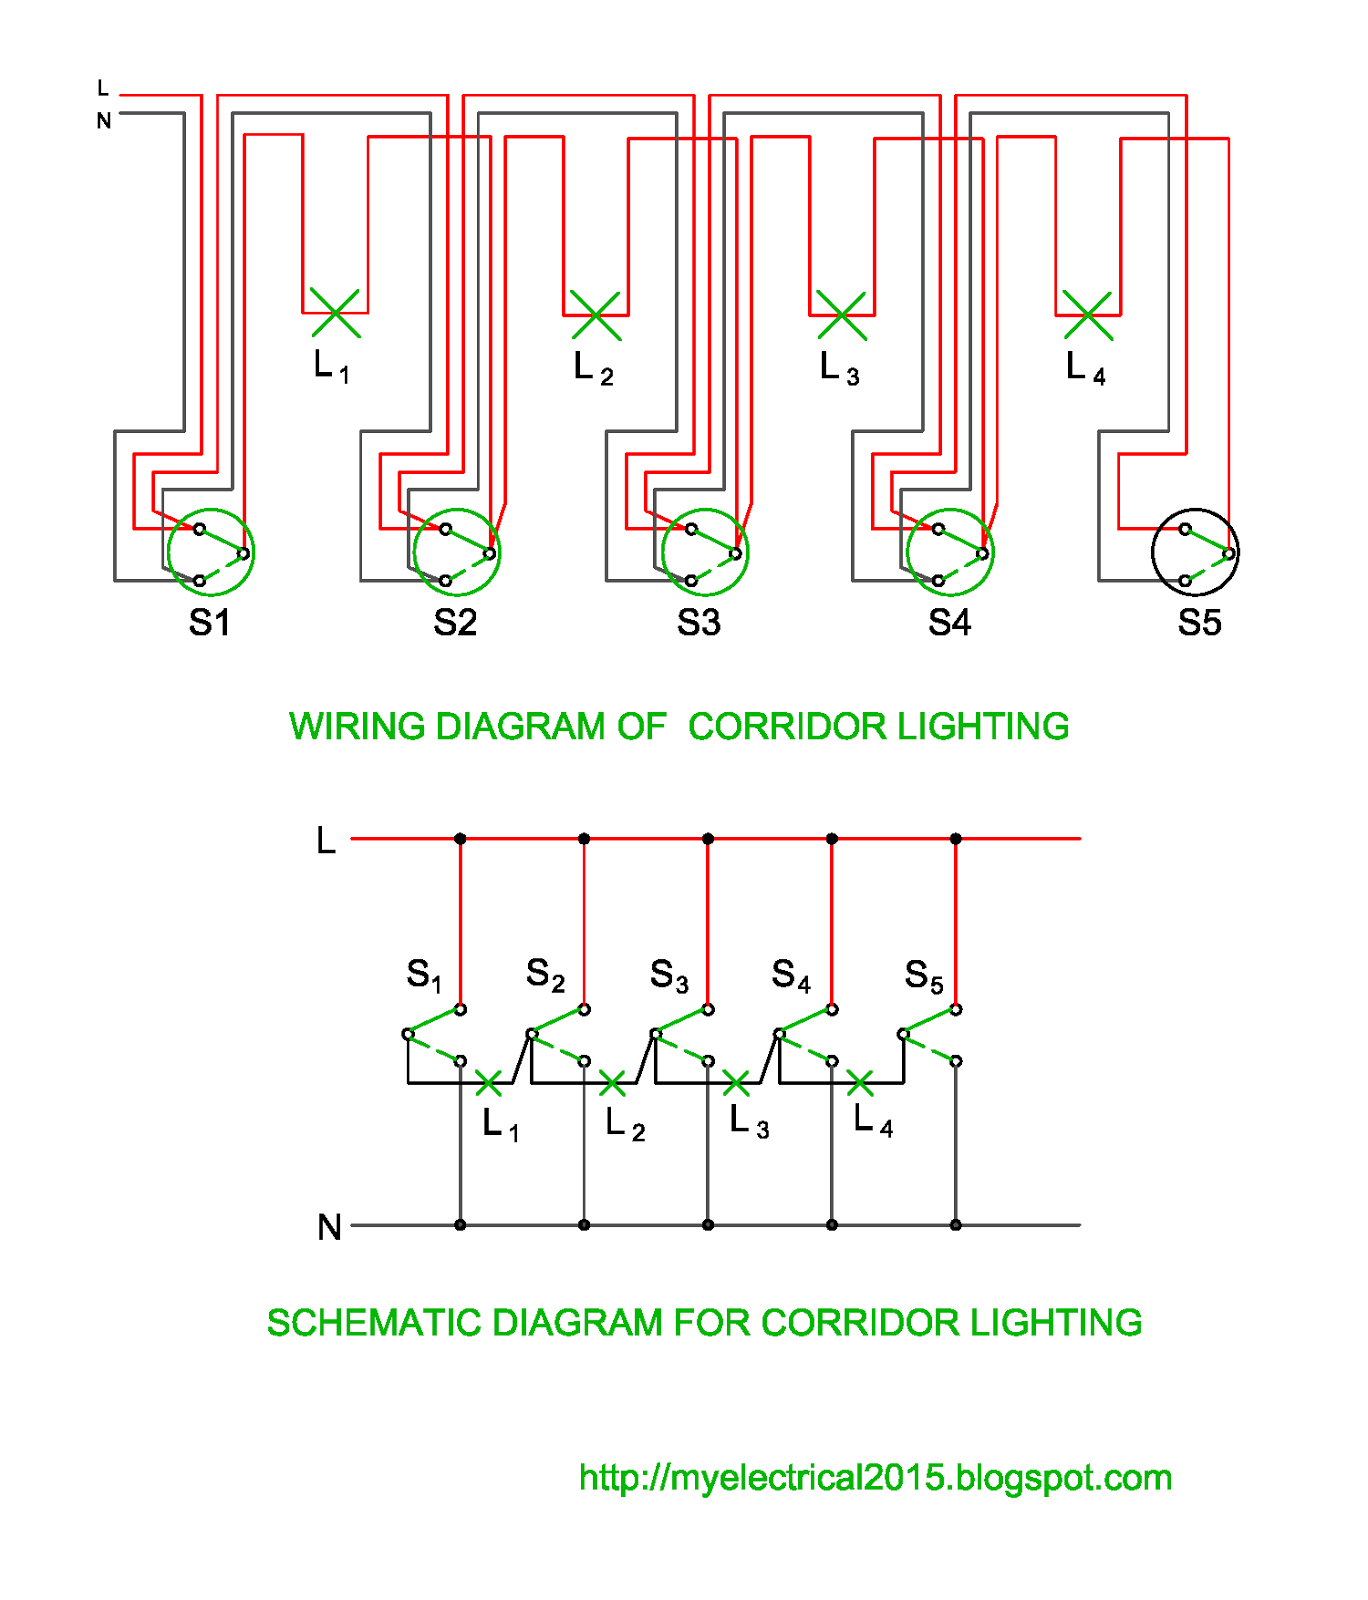 Wiring And Schematic Diagram of Corridor Lighting Electrical